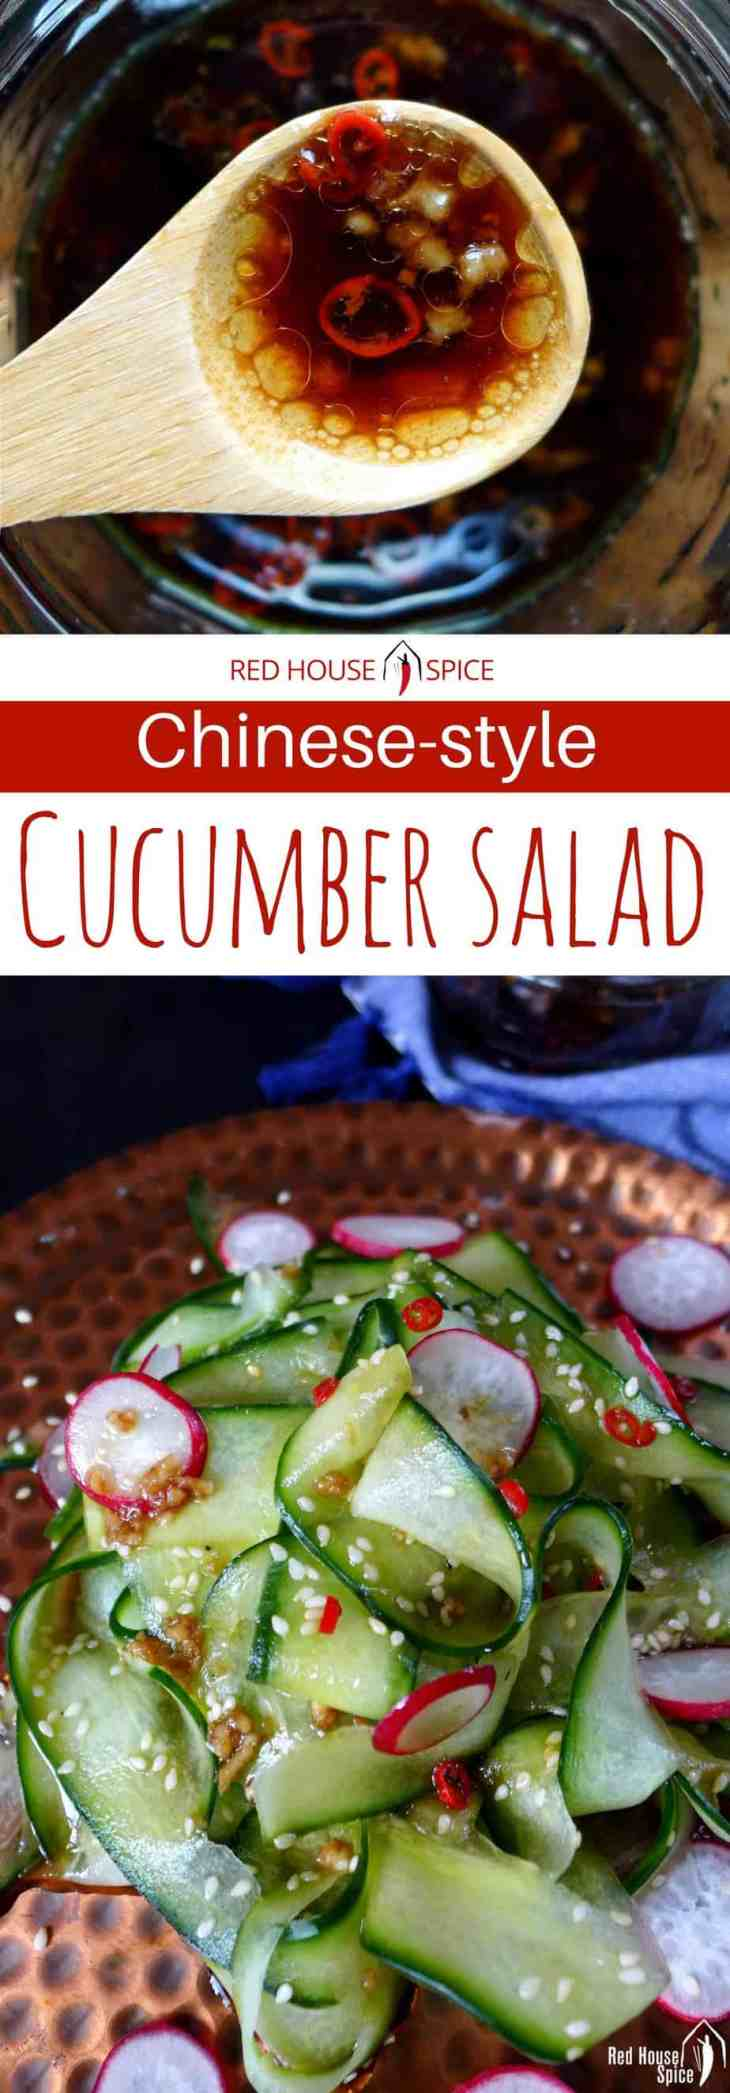 A classic salad with a new look. Flavoured with an easy Chinese dressing. Formula to make this versatile seasoning revealed.